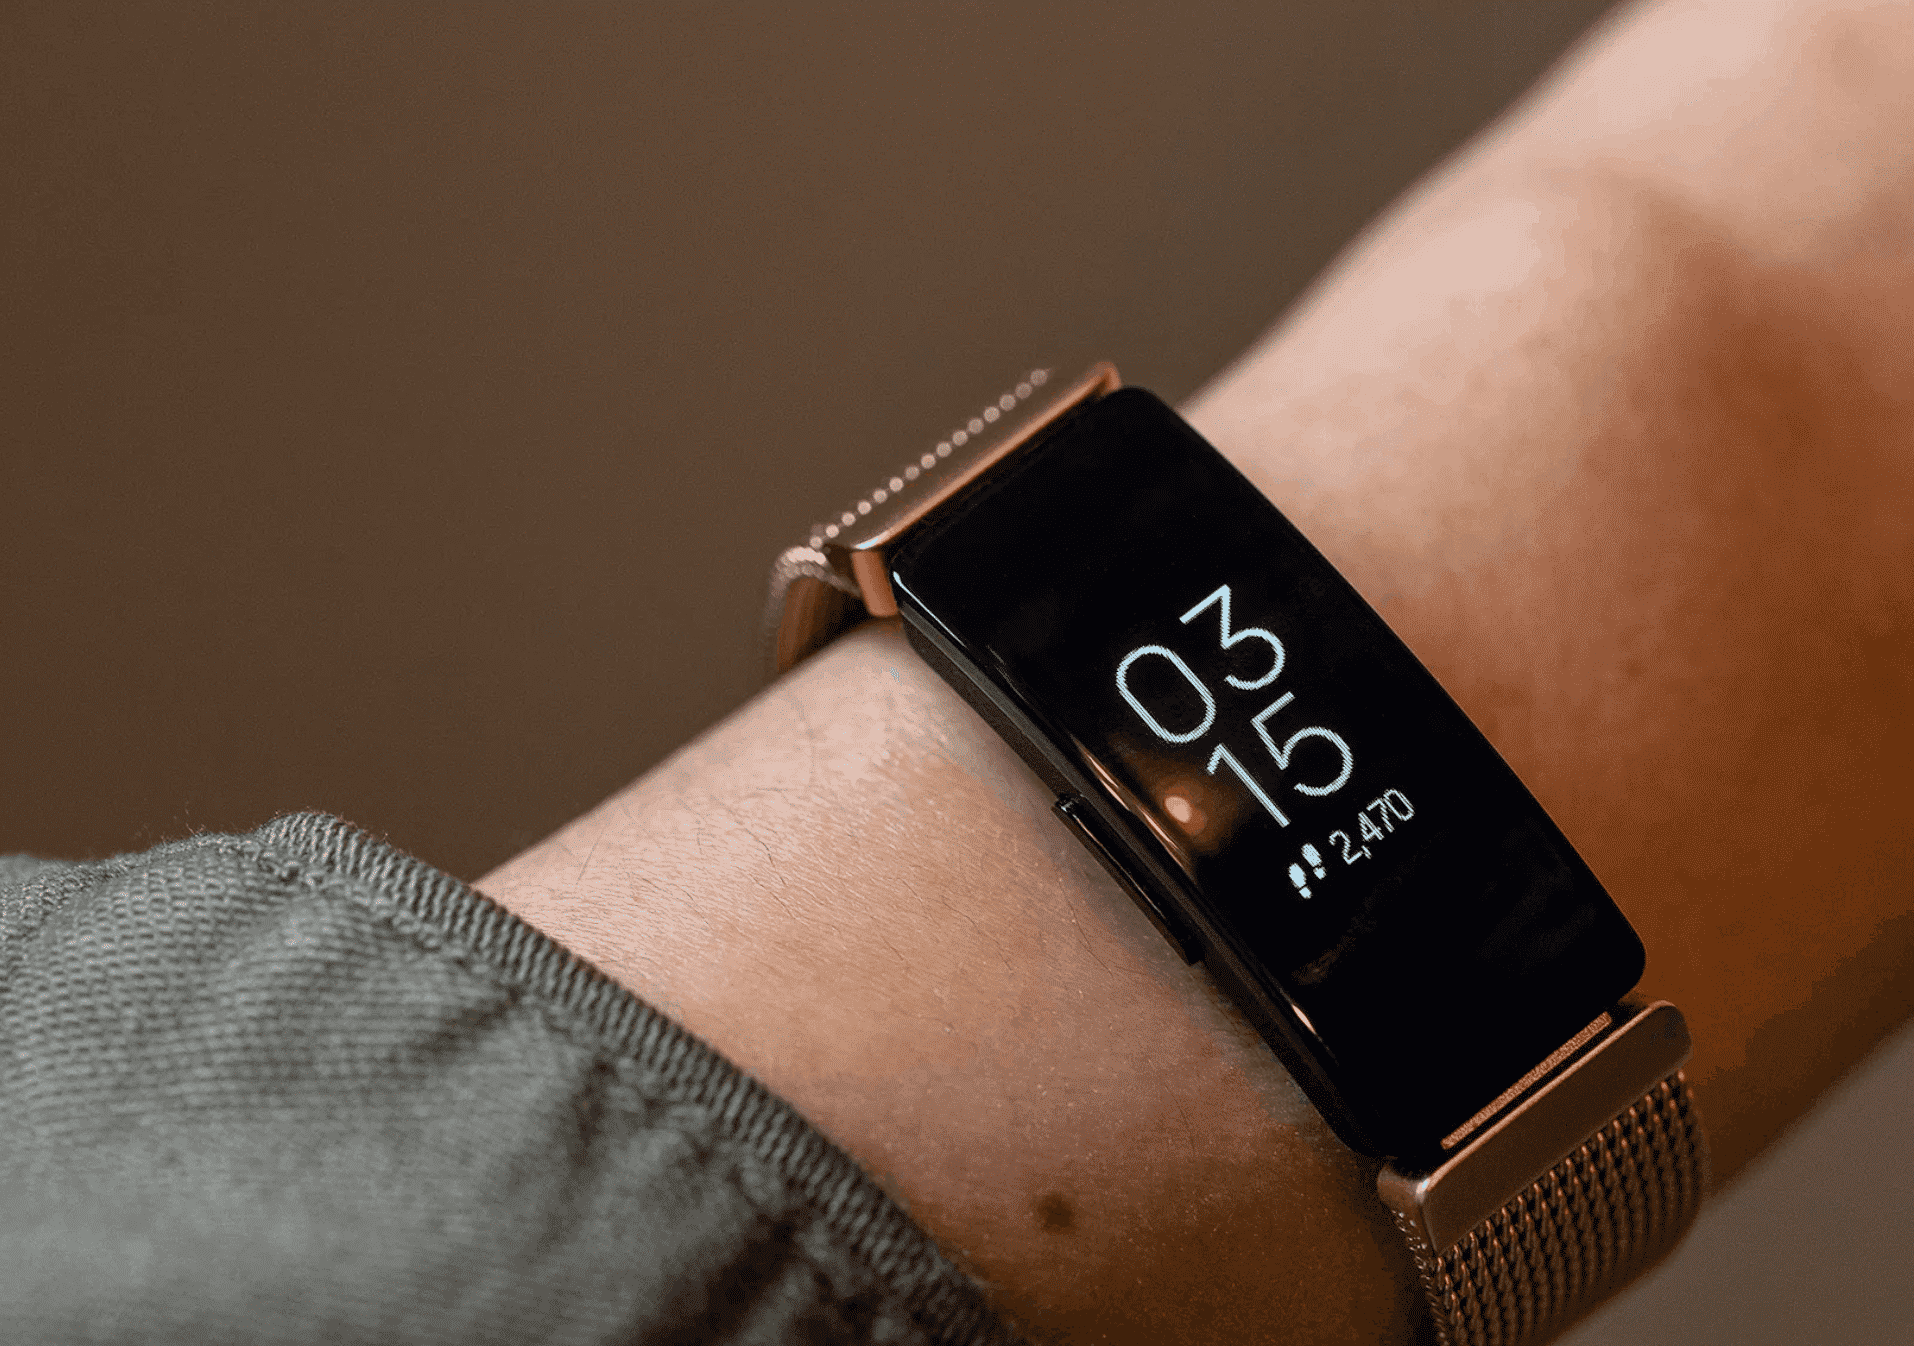 Google Acquires Fitbit for 2.1 Billion USD to Keep Up with Apple